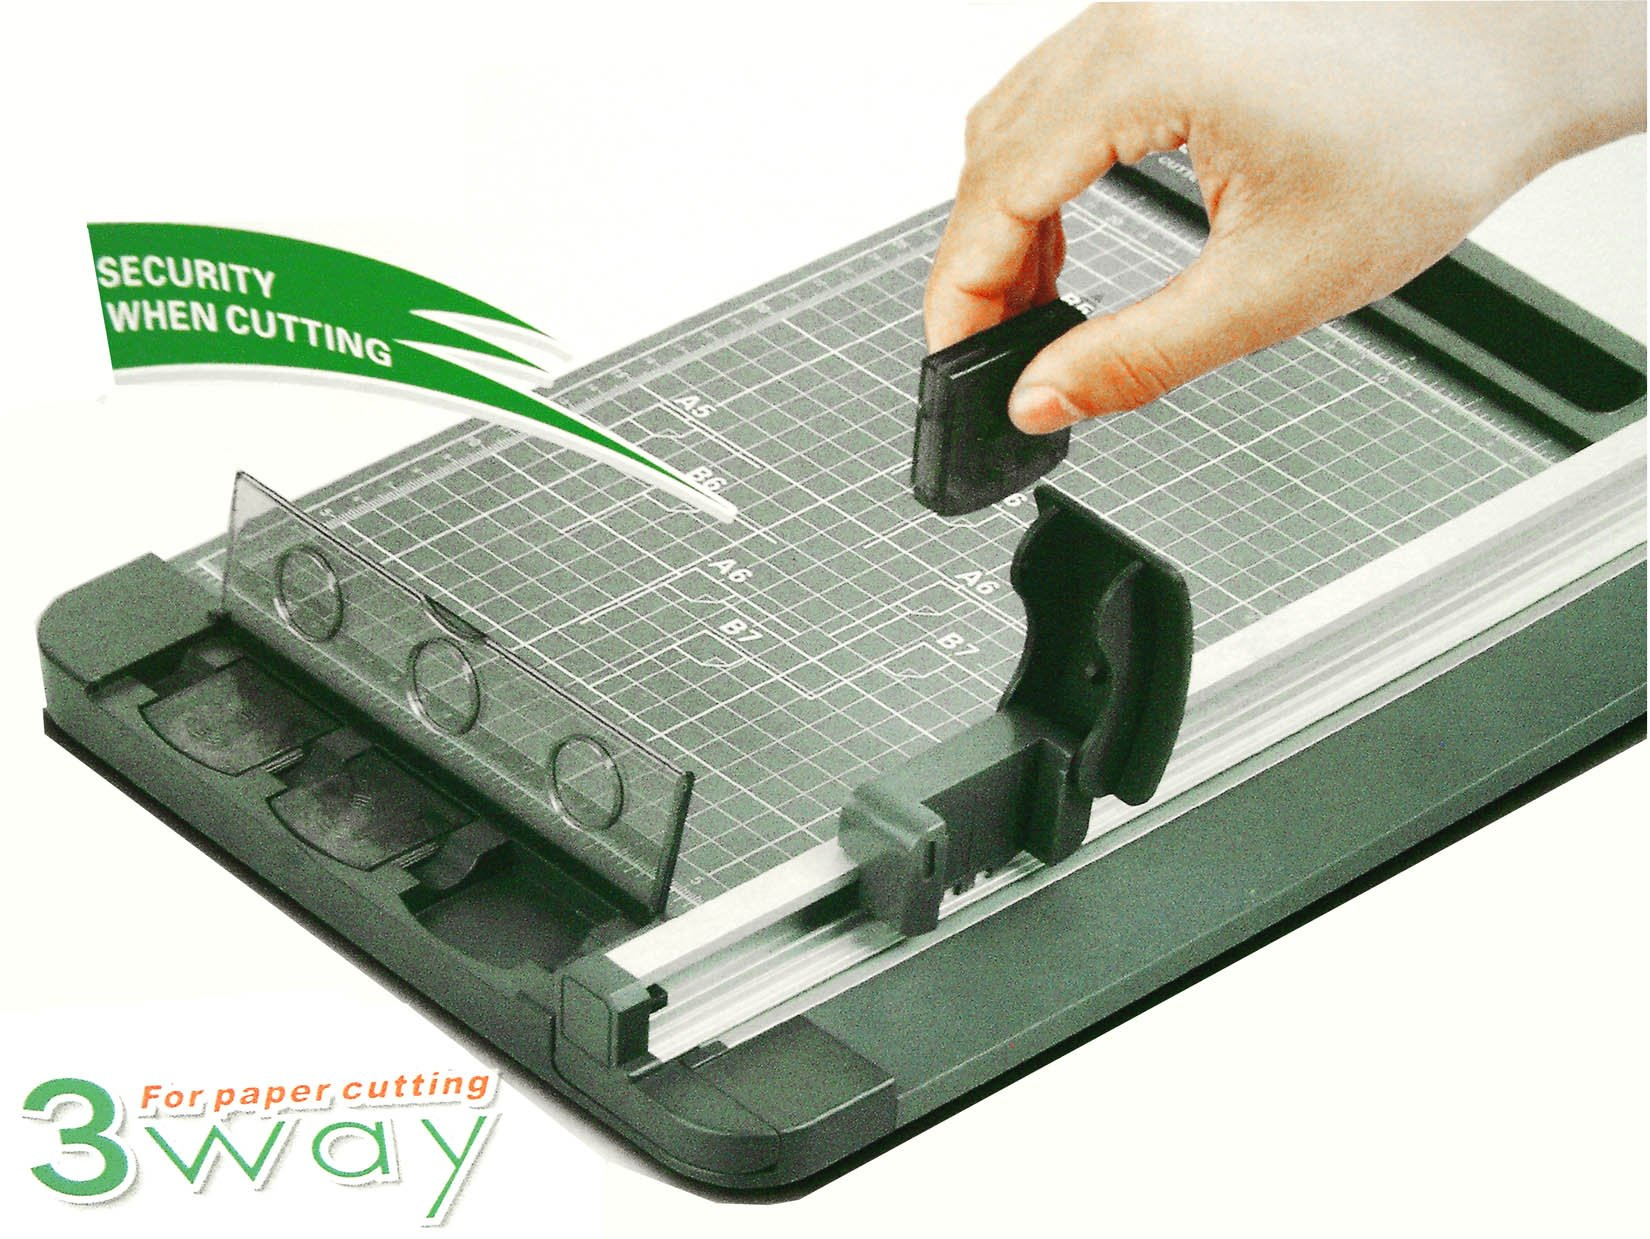 Renewed Rotary Paper Cutter 1112 SmartCut 12 Cut Length Compact Personal Swingline Paper Trimmer 5 Sheets Capacity